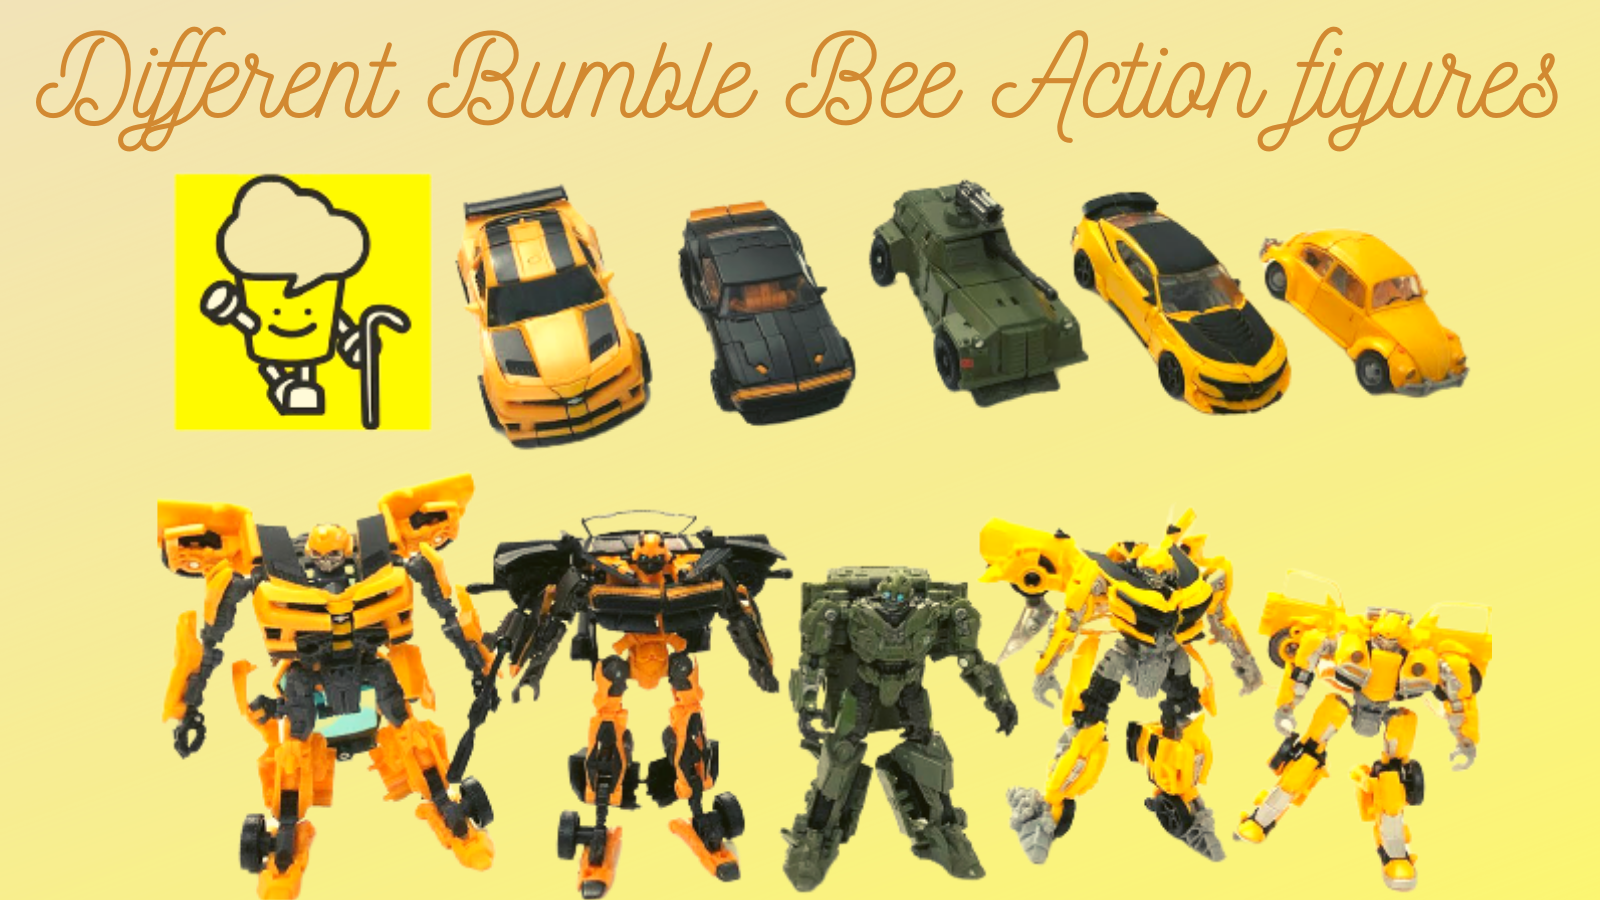 Different Bumble Bee Action Figures.